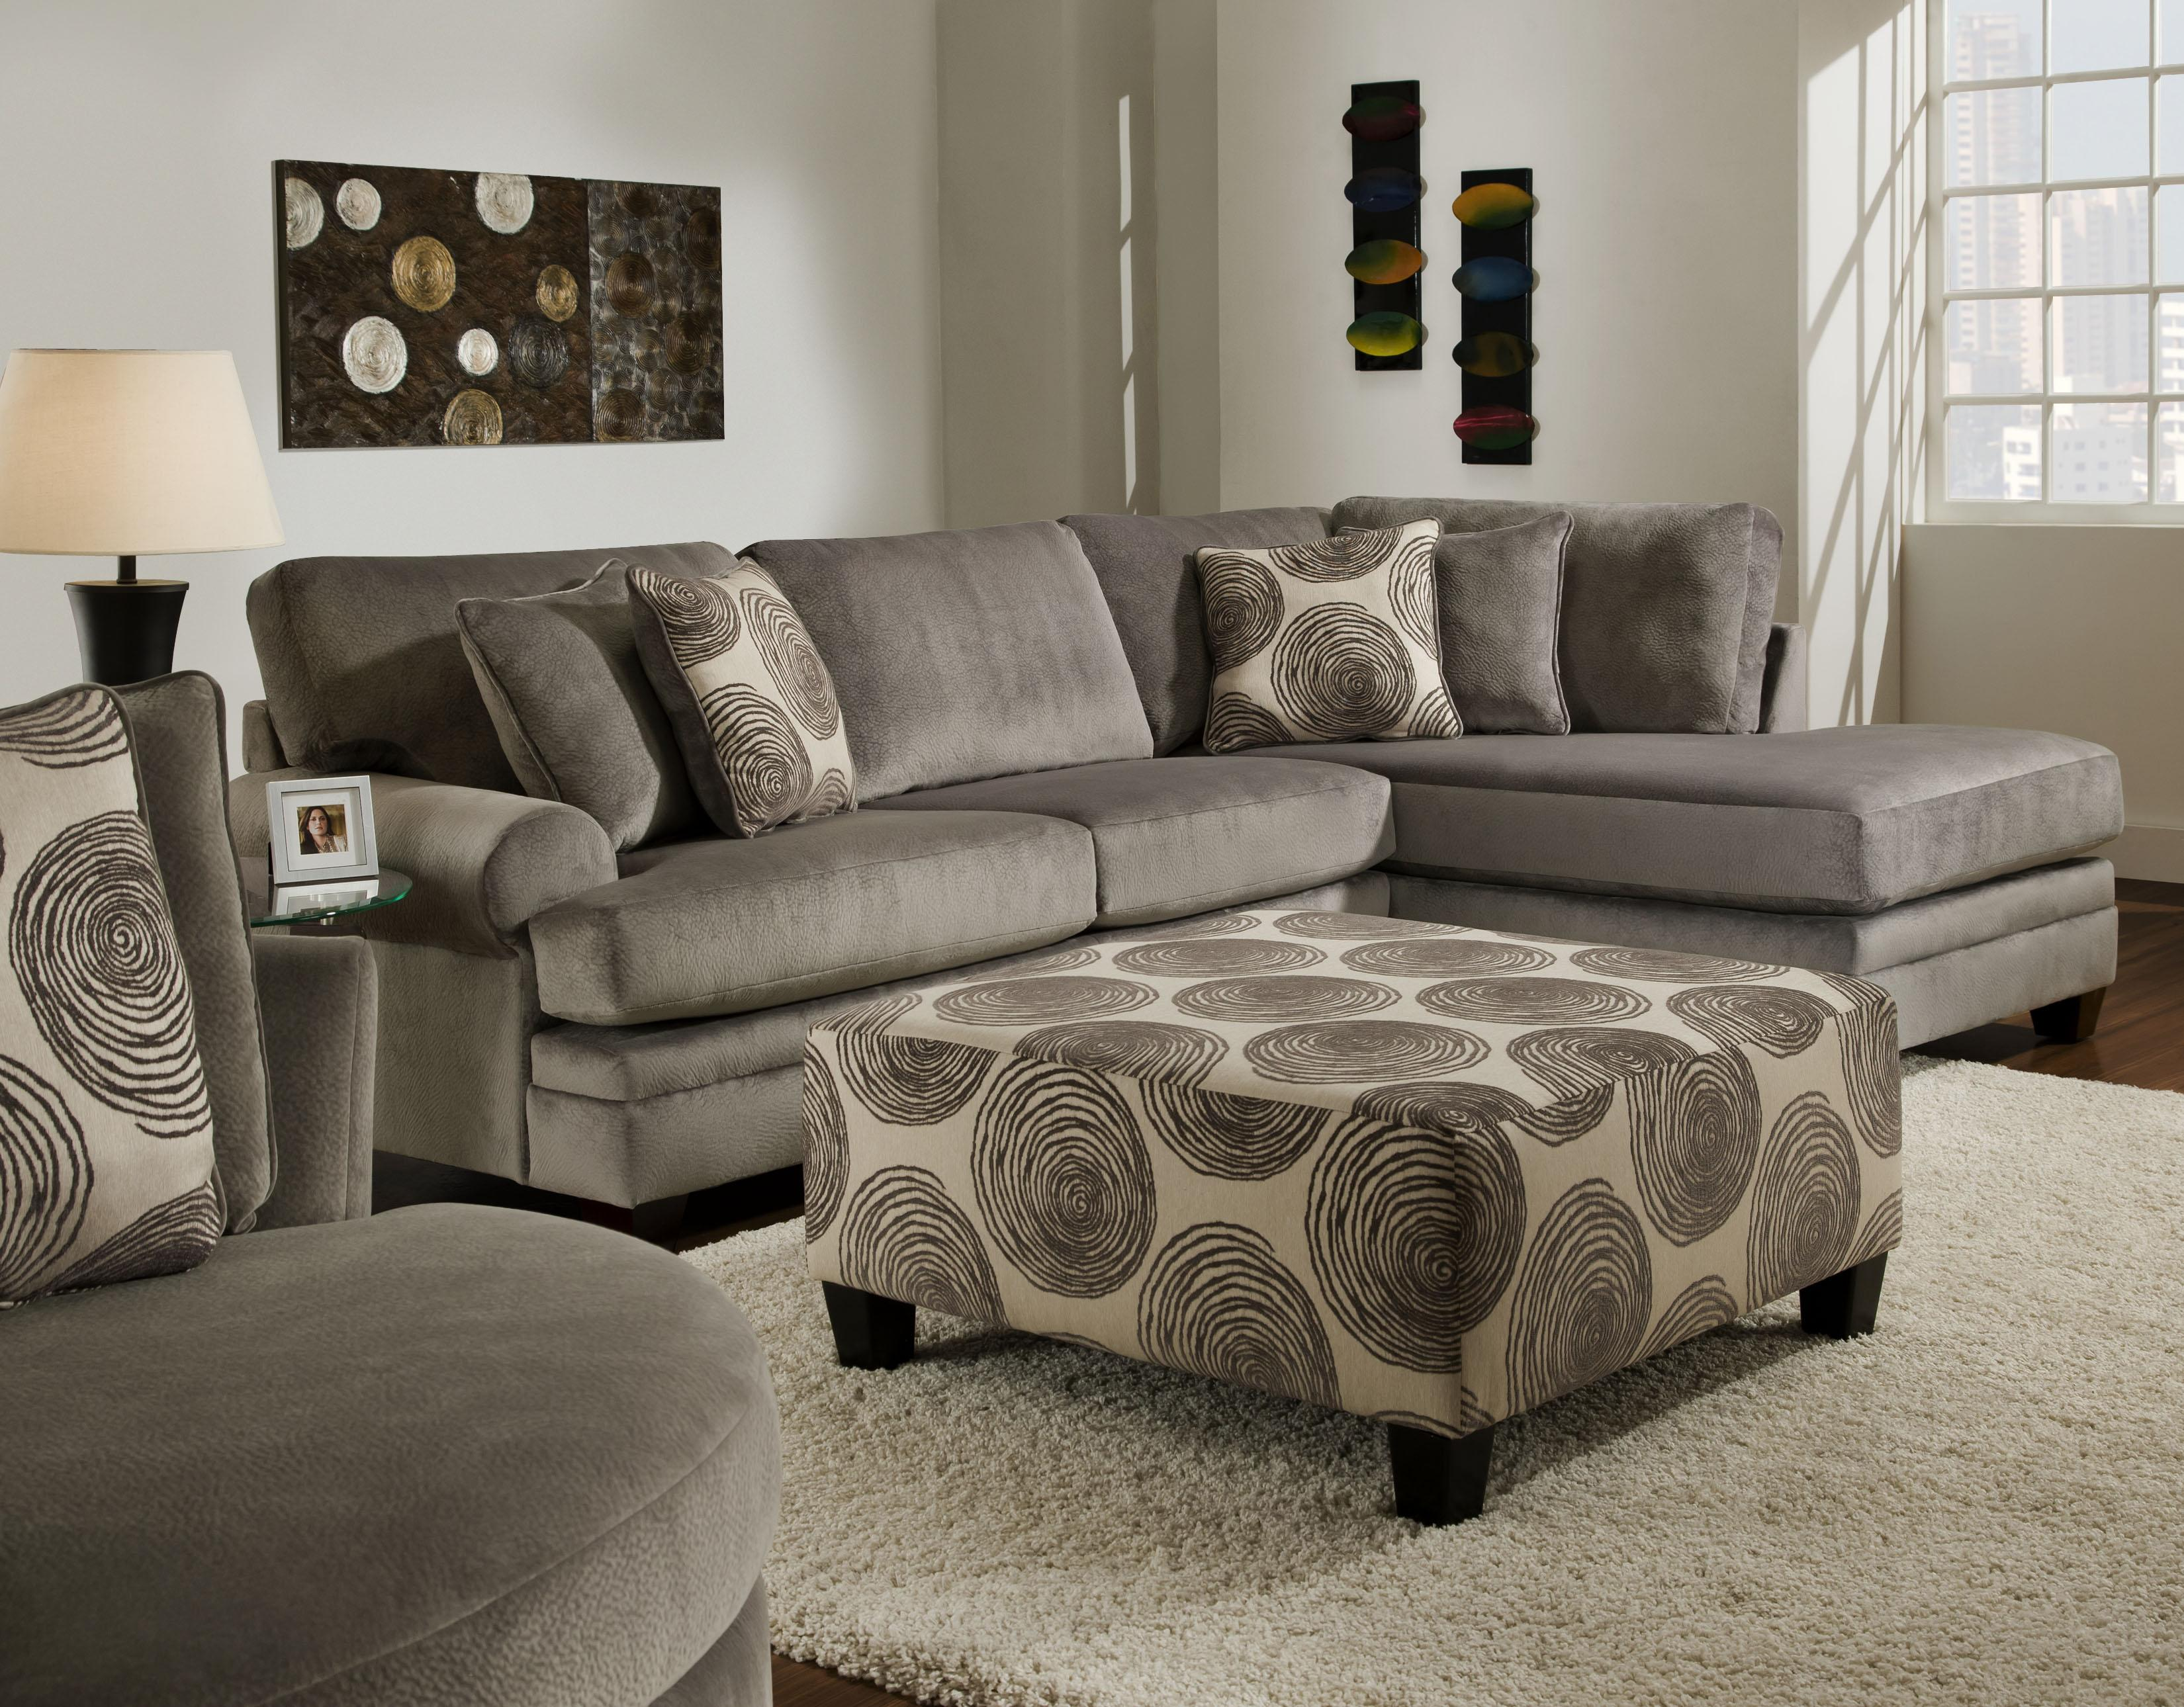 Albany 8642 Transitional Sectional Sofa with Chaise   A1 Furniture    Mattress   Sectional Sofas. Albany 8642 Transitional Sectional Sofa with Chaise   A1 Furniture